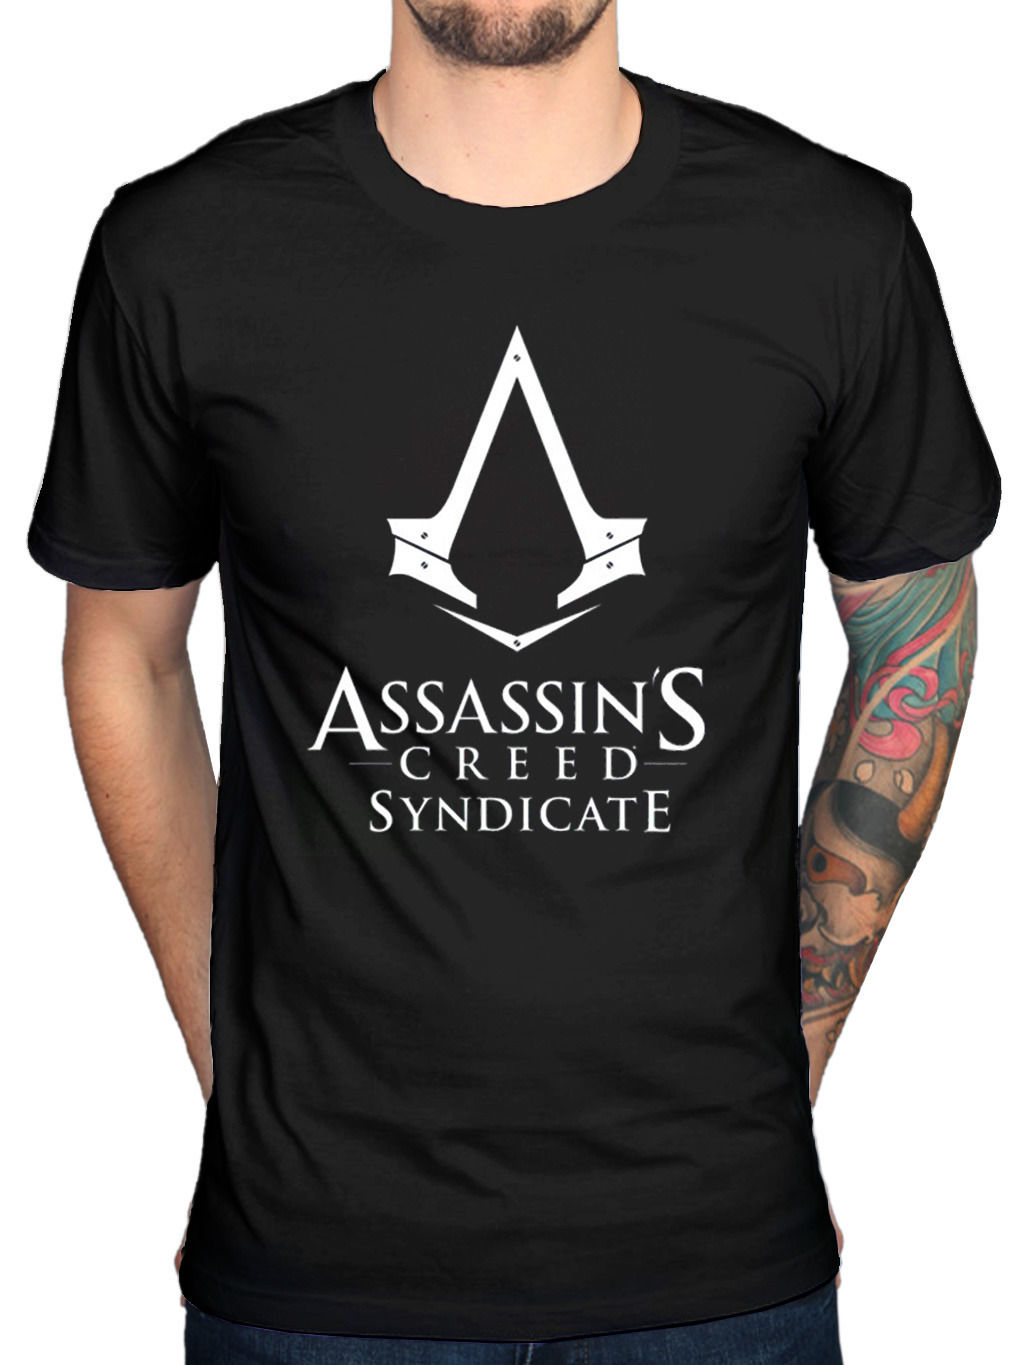 Design t shirt games - 2017 New Arrivals Mens Assassins Creed Syndicate Logo T Shirt Pirates Rogue Identity Game Design T Shirt High Quality Cool